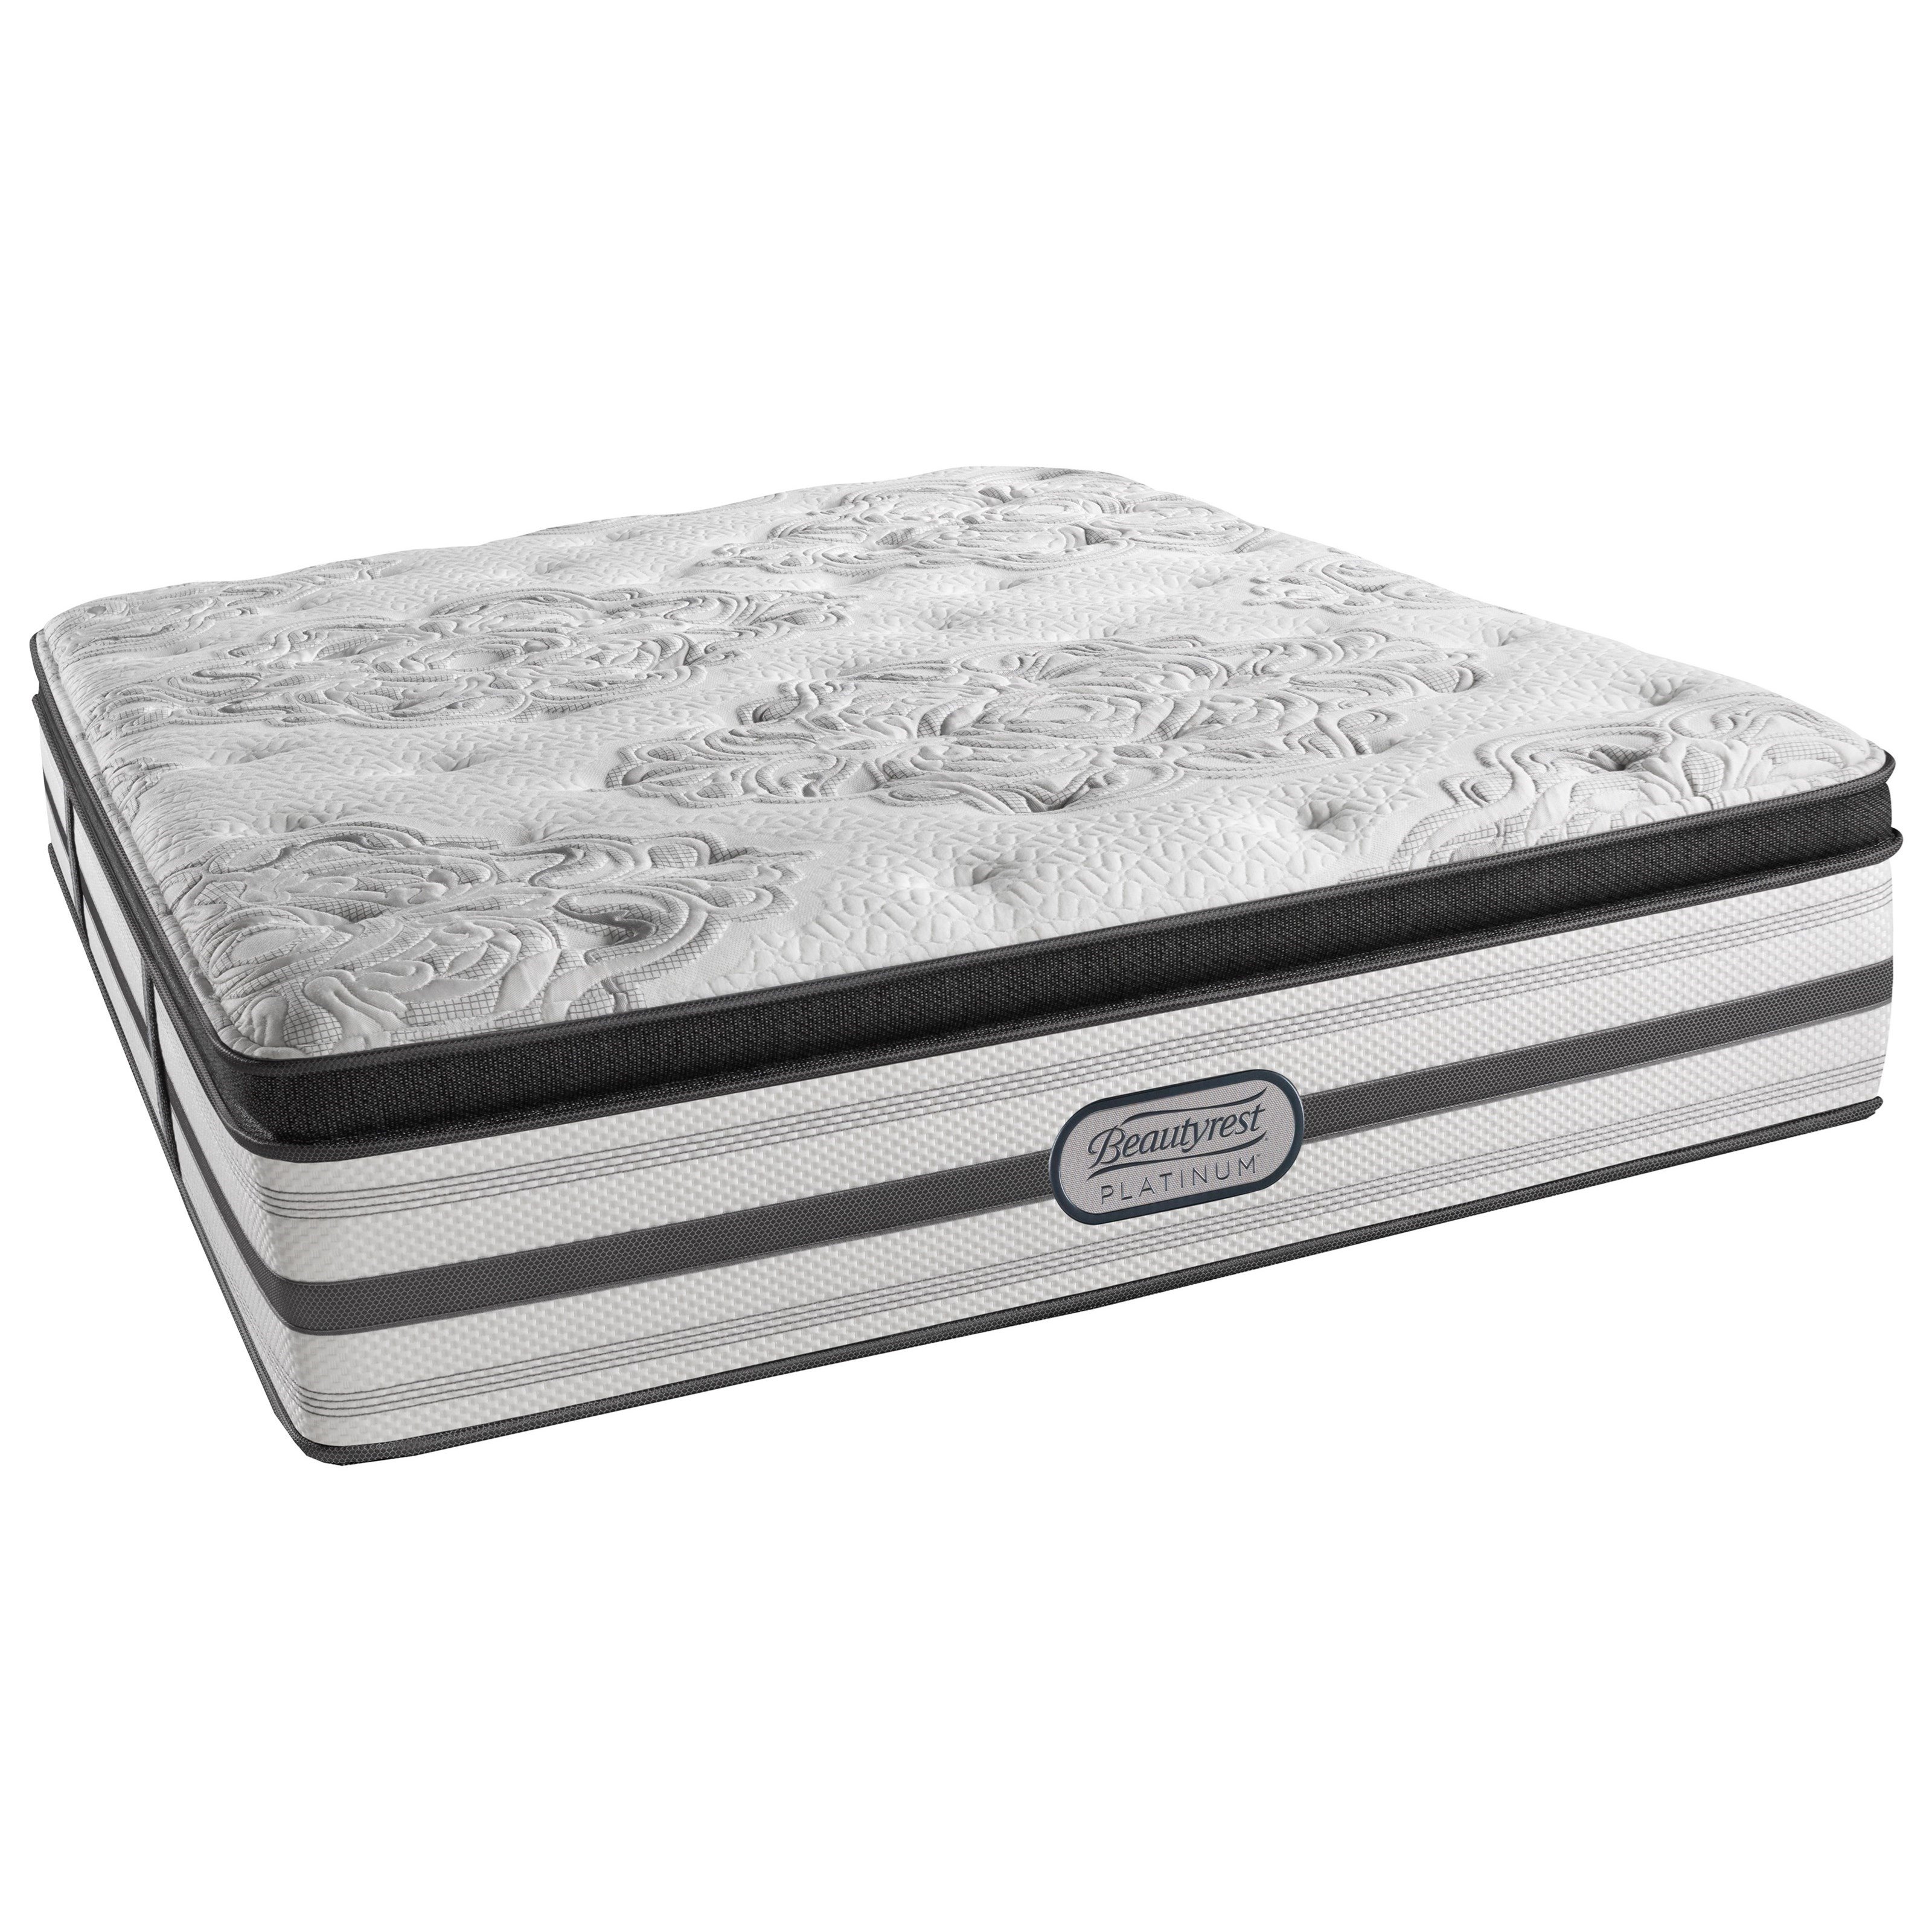 "Beautyrest Platinum Gabriella Twin XL Luxury Firm PT 15"" Mattress - Item Number: LV3LFPT-TXL"